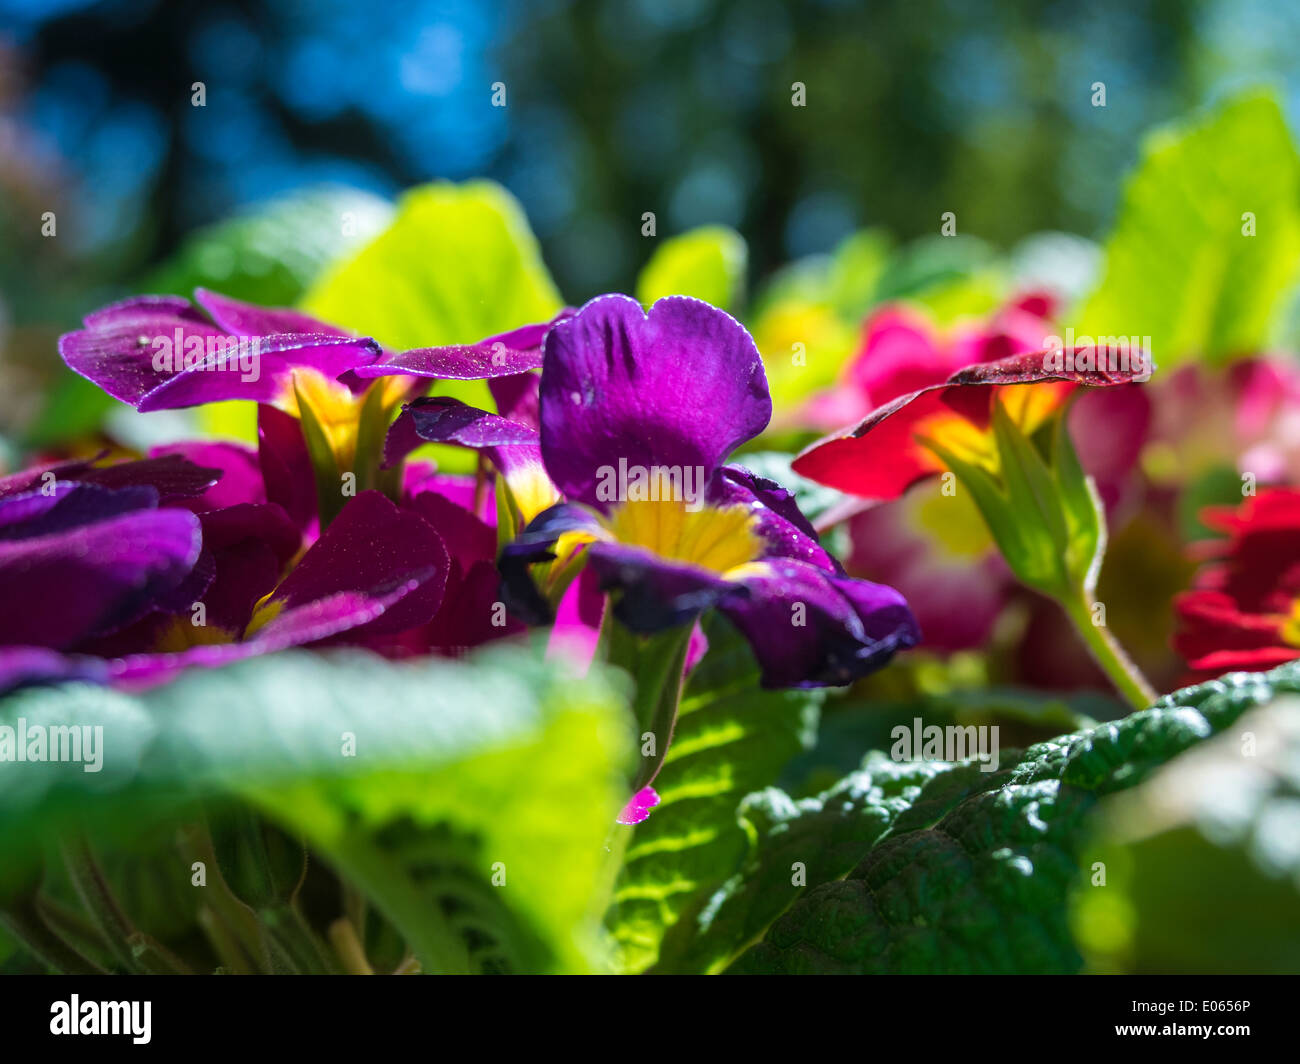 Different Pansies flowers in the garden during spring time Stock Photo